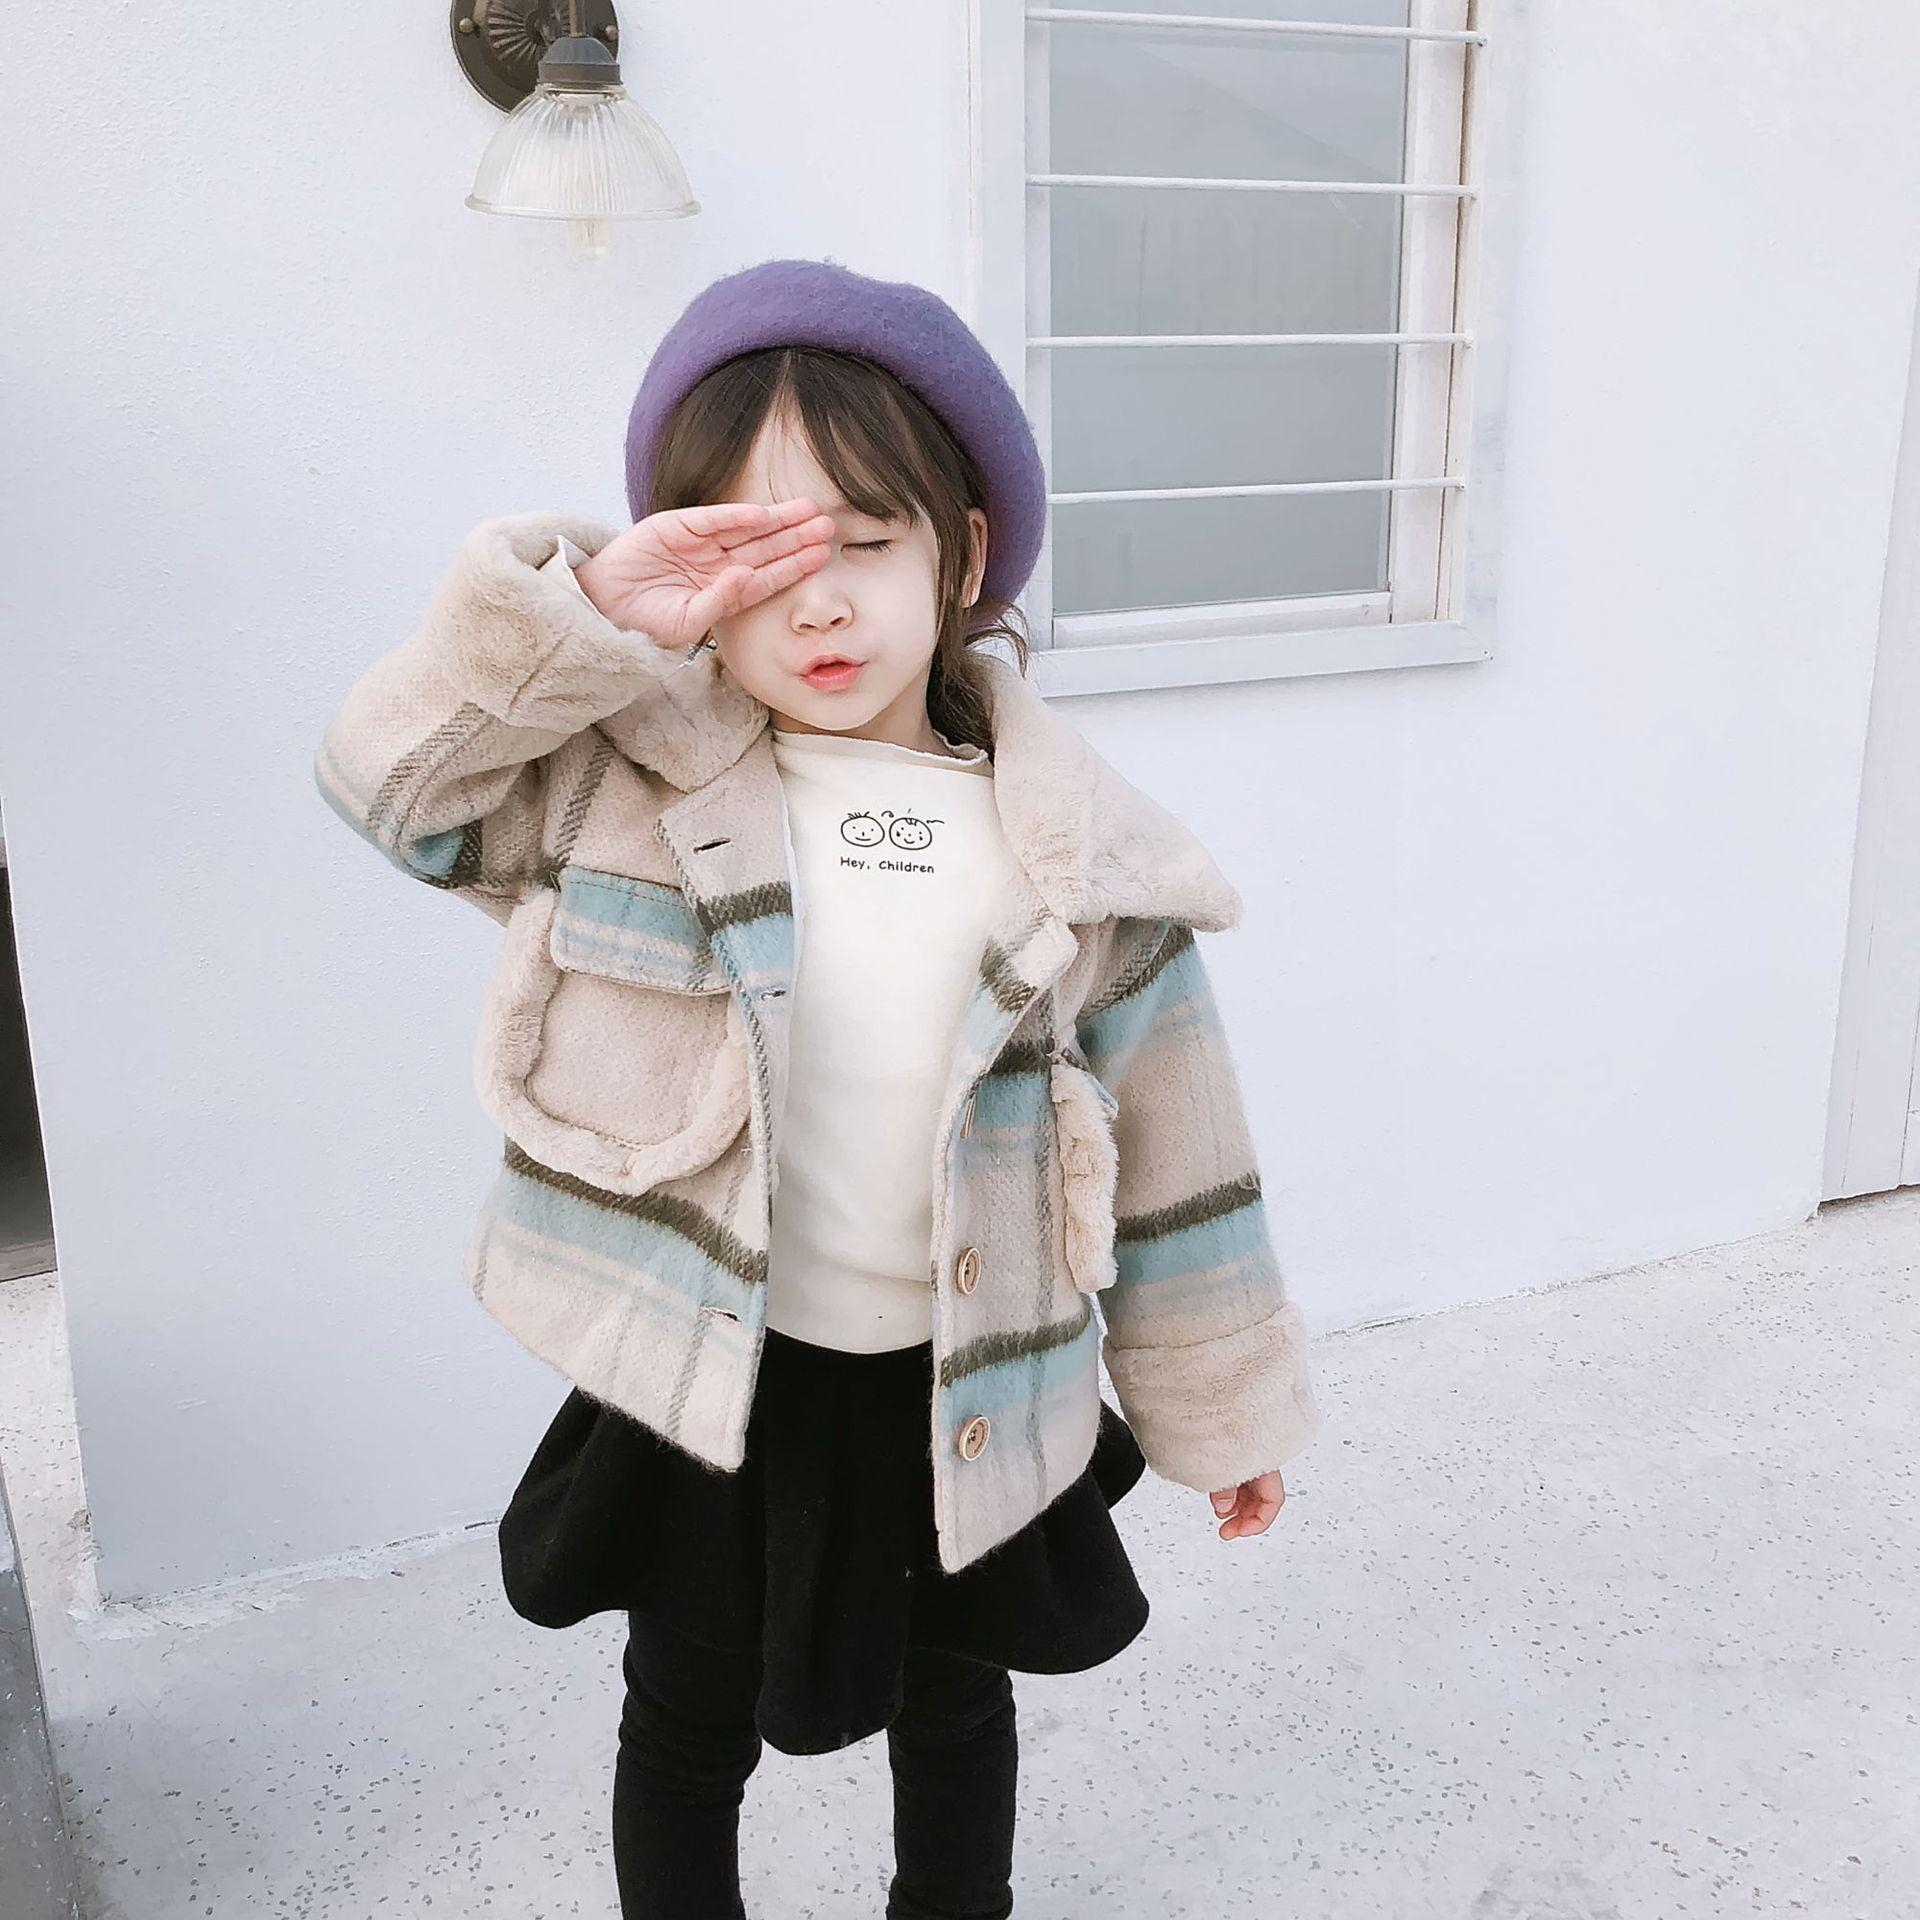 91e324a092 2019 Winter New Arrival korean style colorful plaid pattern fashion  all-match thickened jacket for cute sweet baby girls